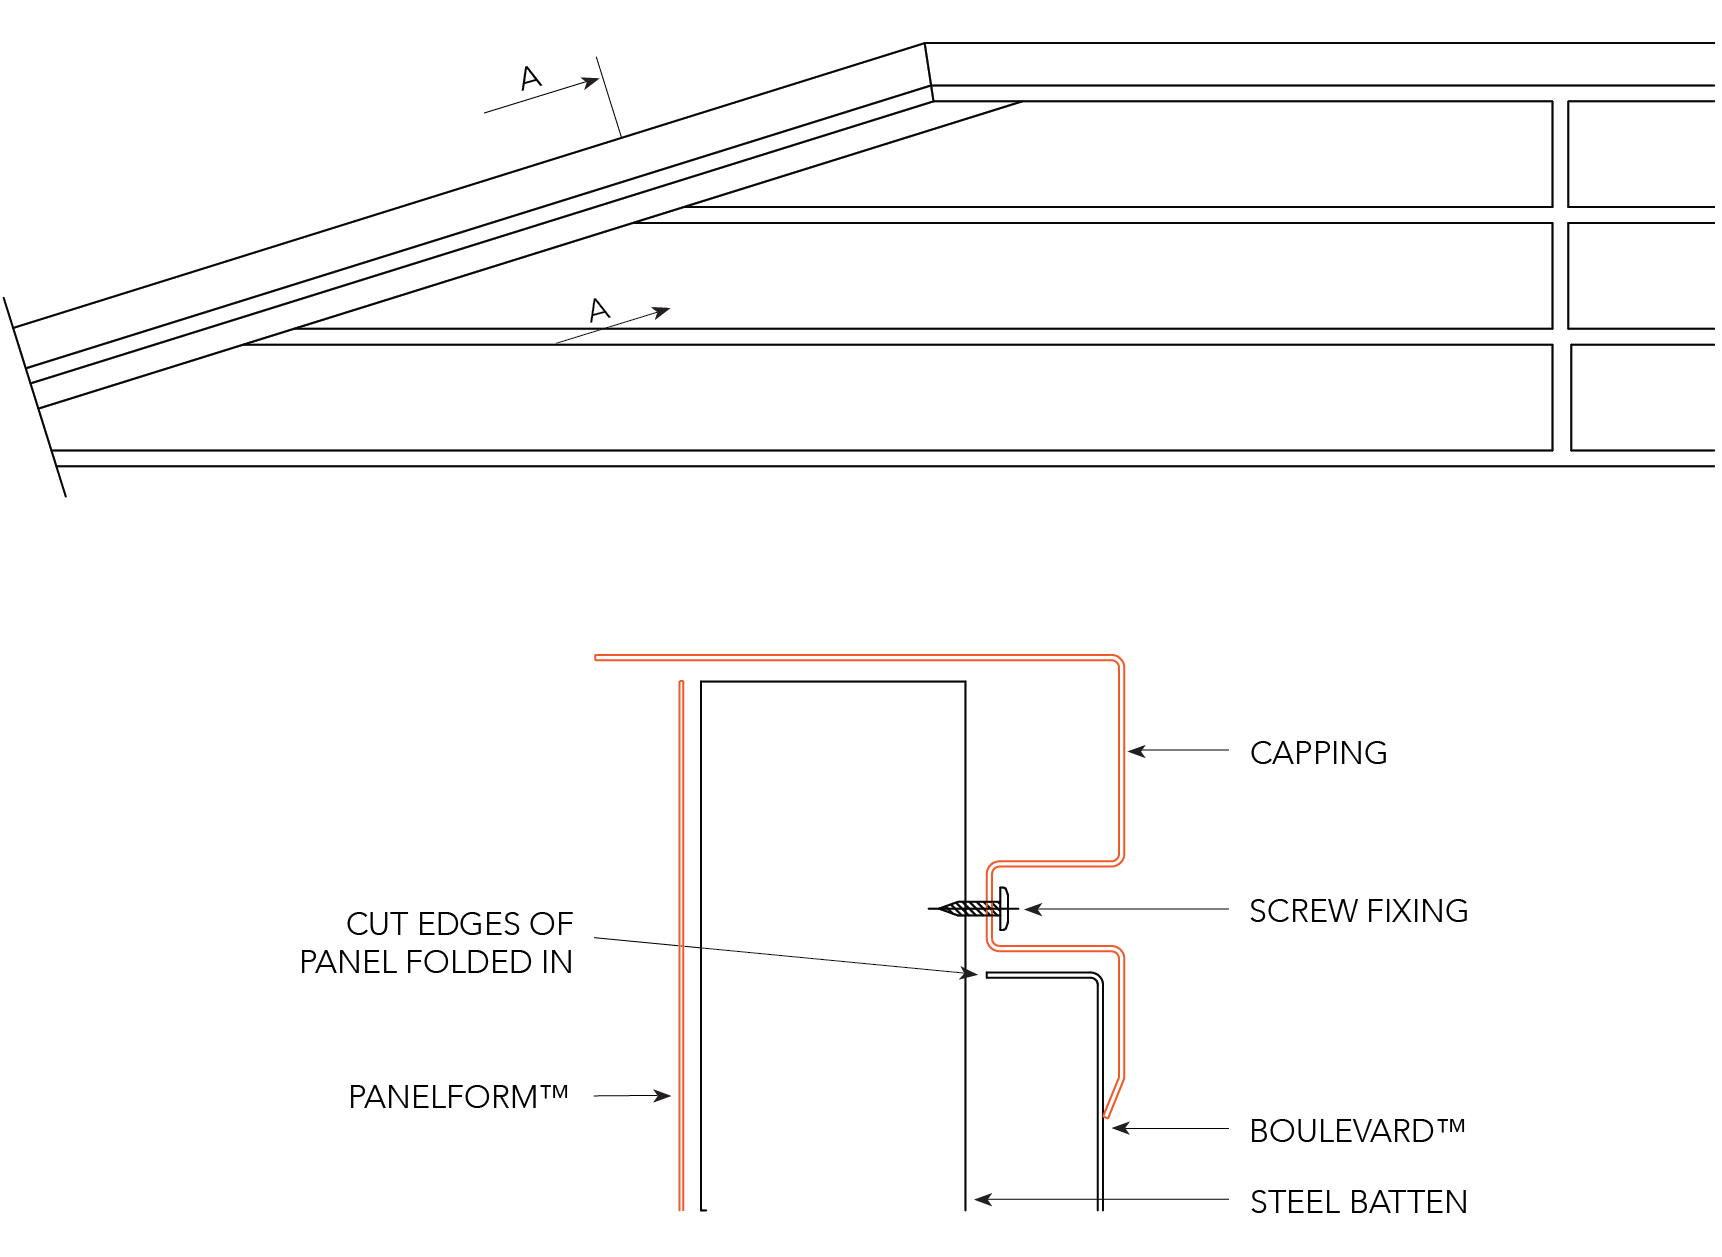 BOULEVARD™ NON-CYCLONIC Pitched Roof Figure BL ID NC 006